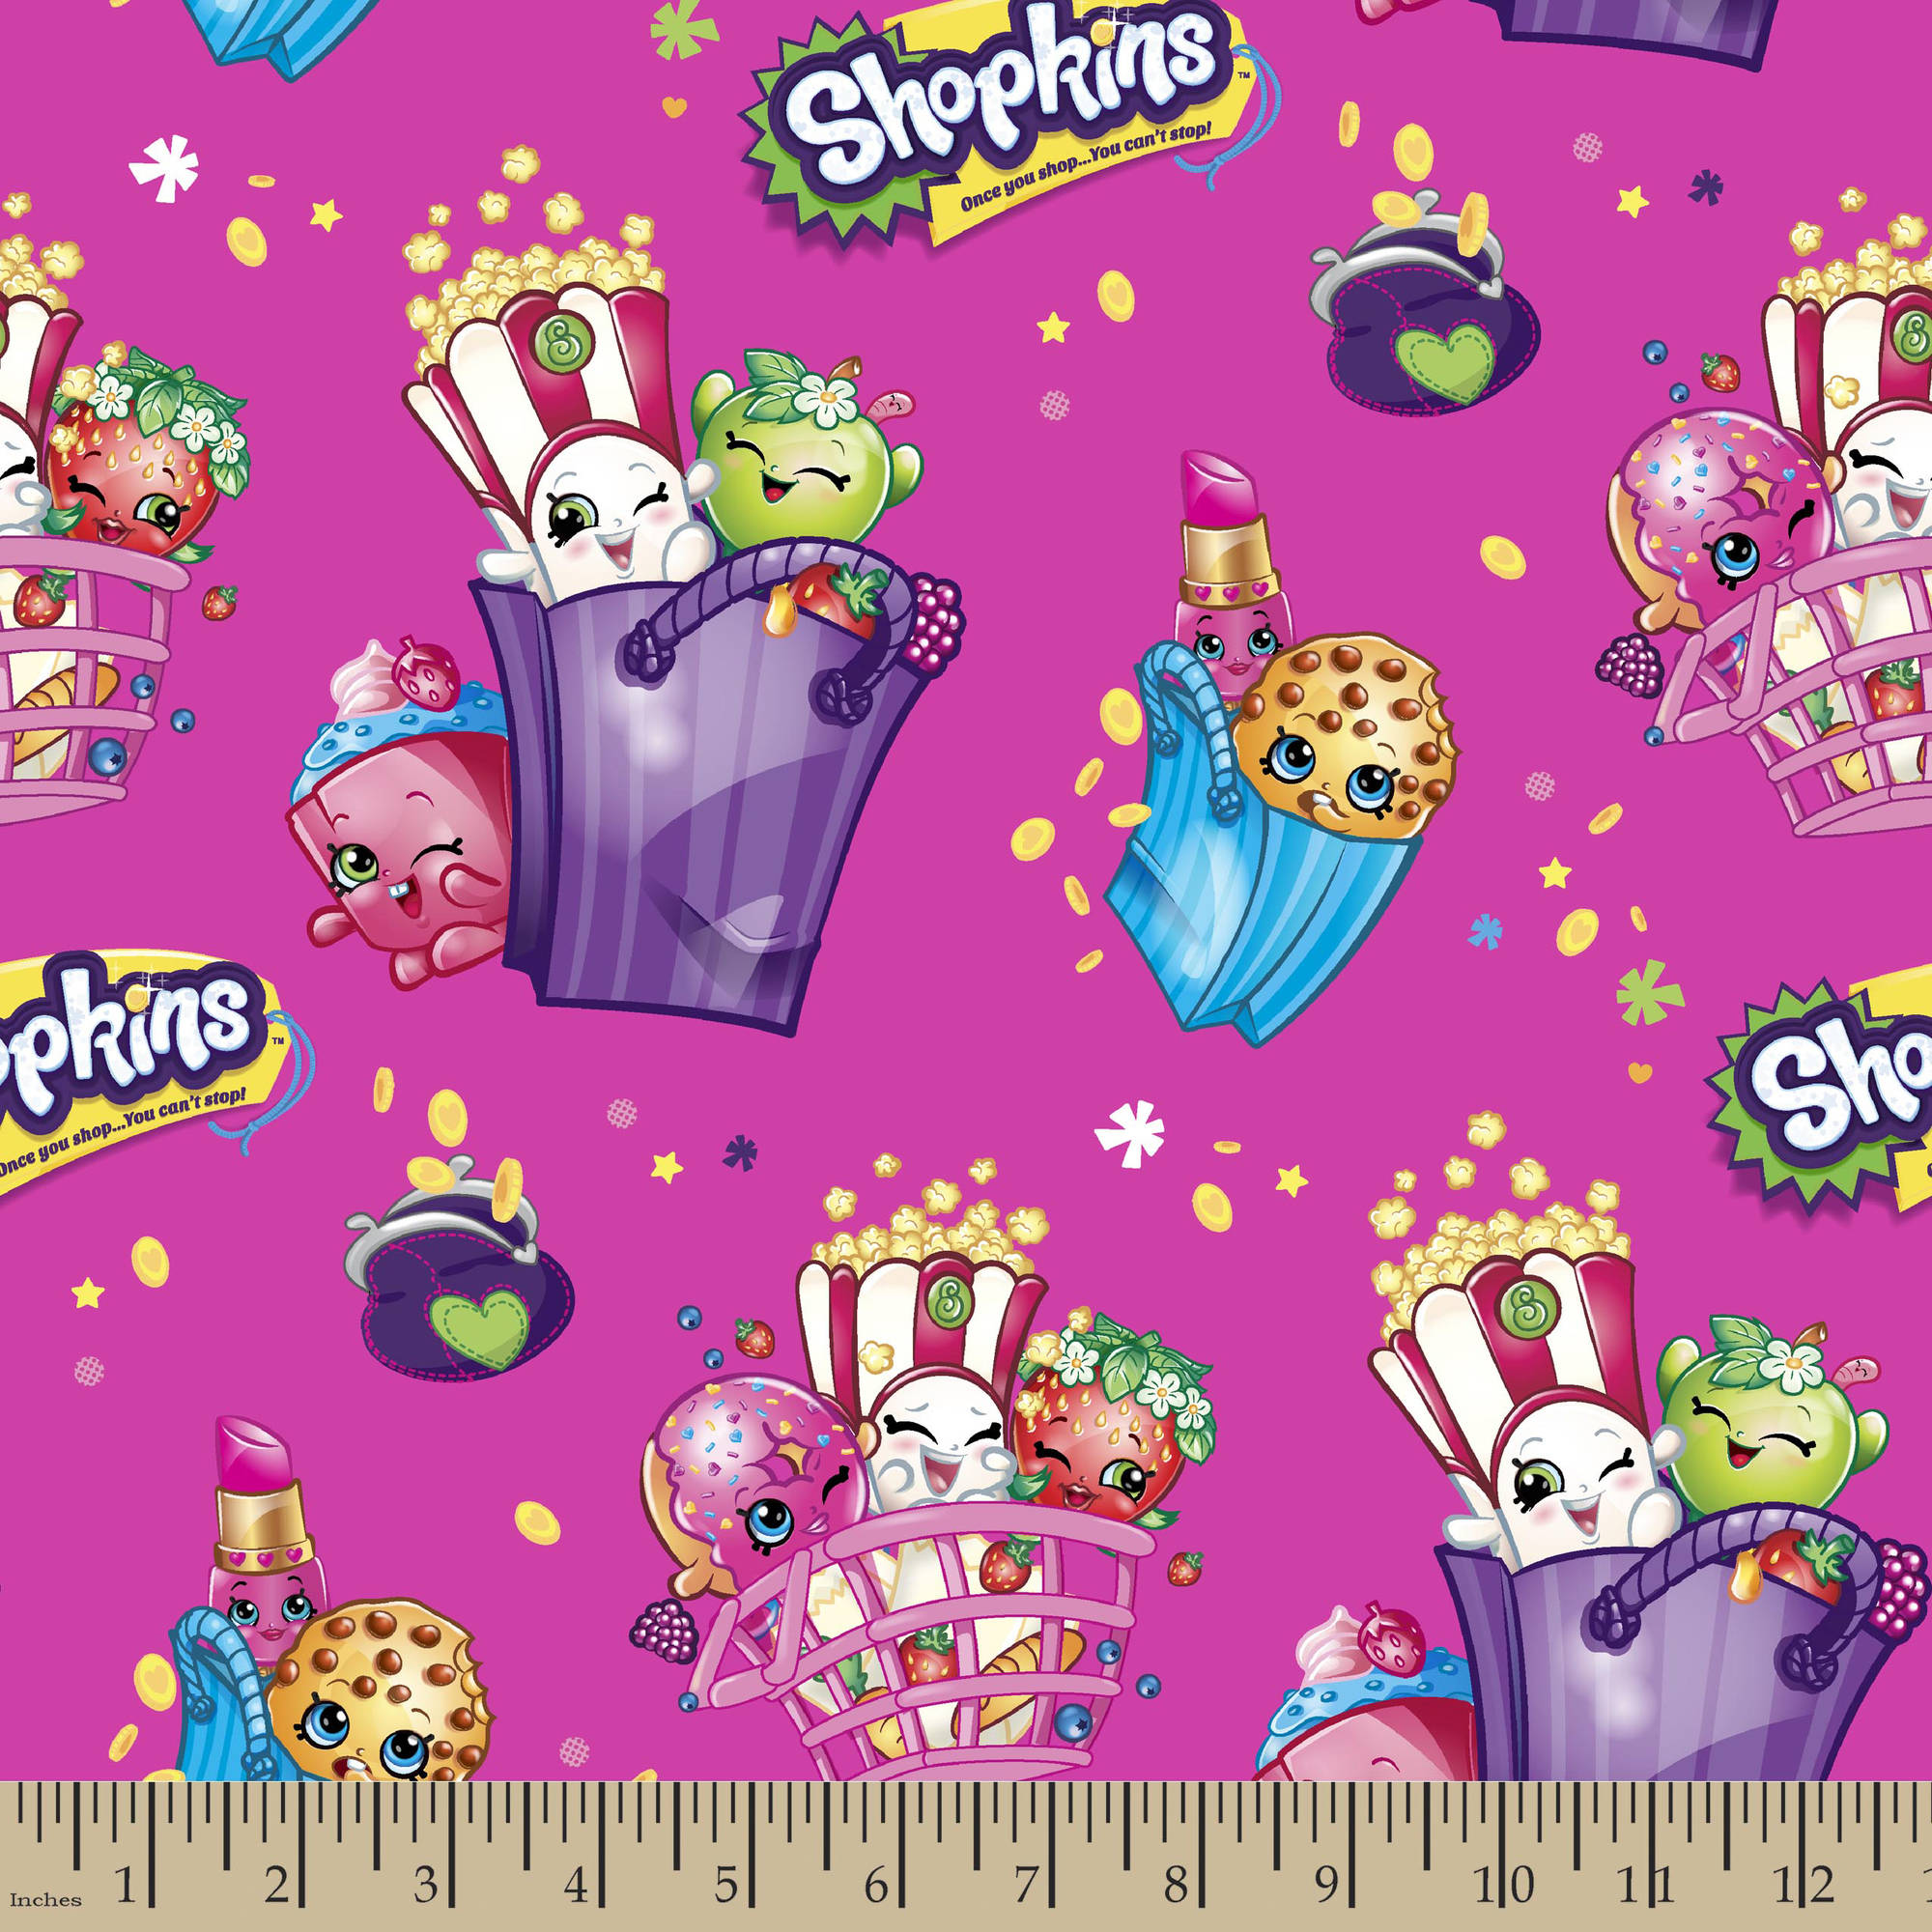 "Moose Shopkins Bags of Fun Fabric by the Yard, Pink, 43""/44"" Width"